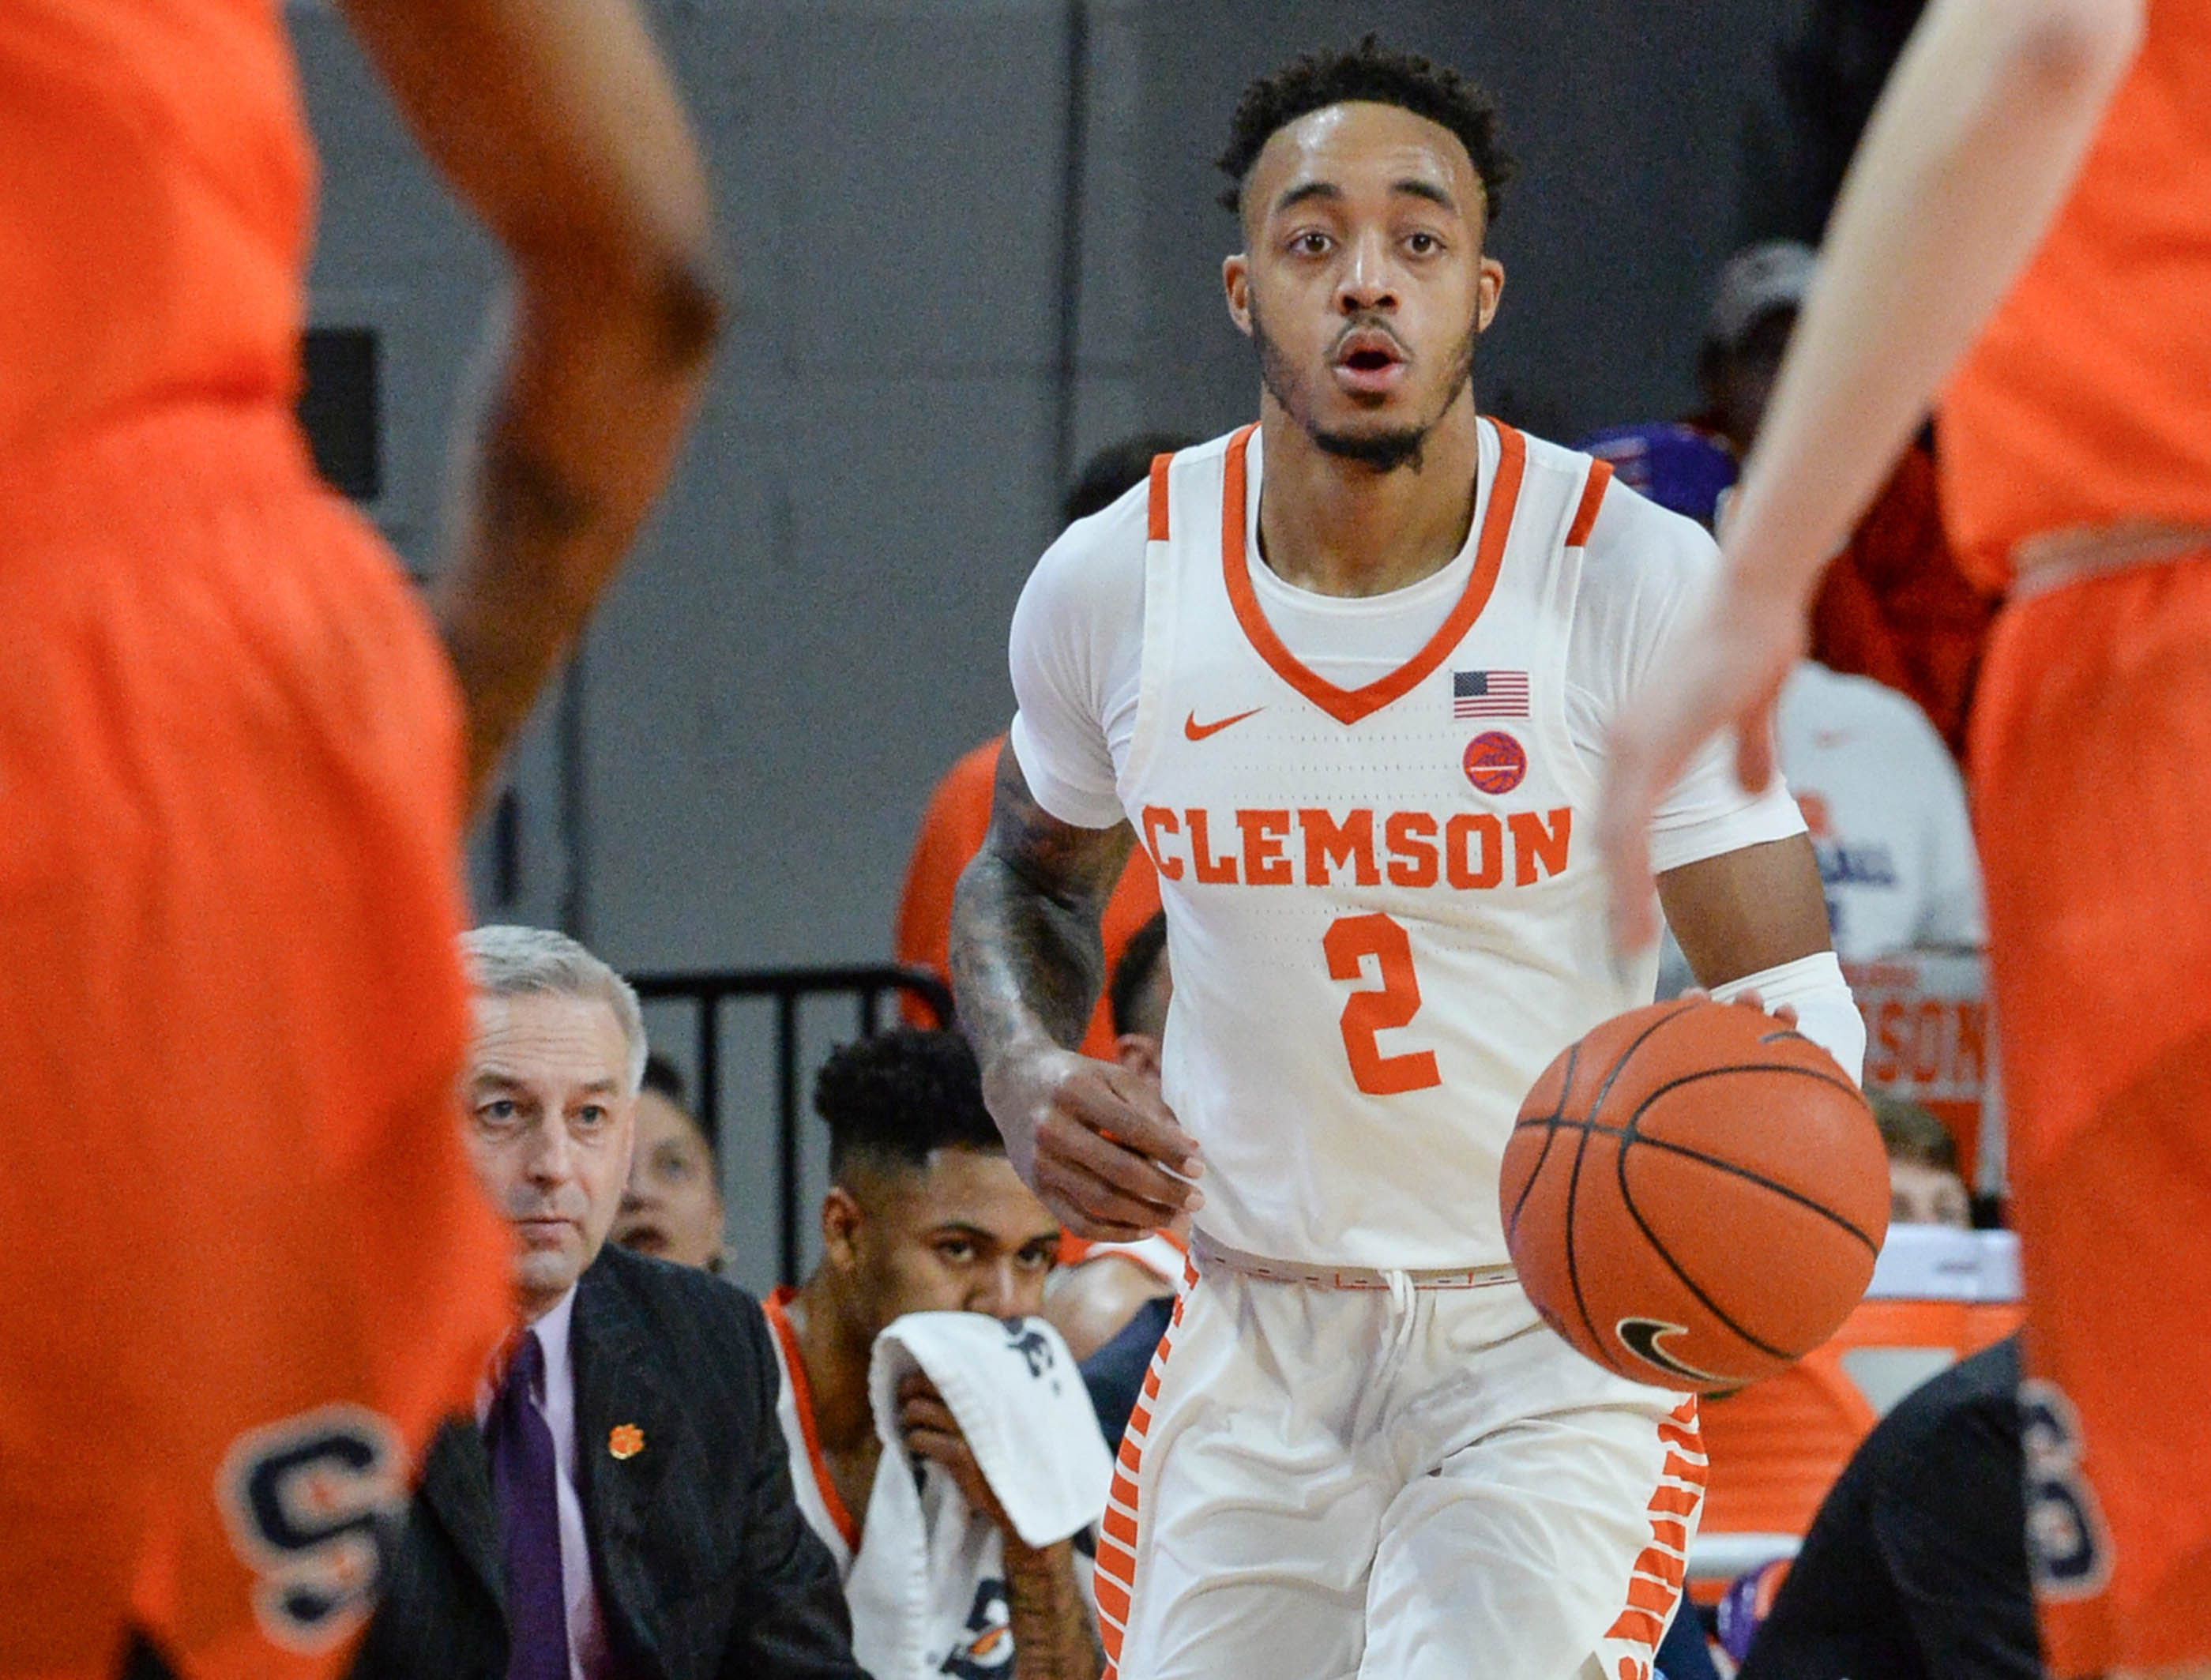 Clemson guard Marcquise Reed (2) dribbles during the first half at Littlejohn Coliseum in Clemson Saturday, March 9, 2019.